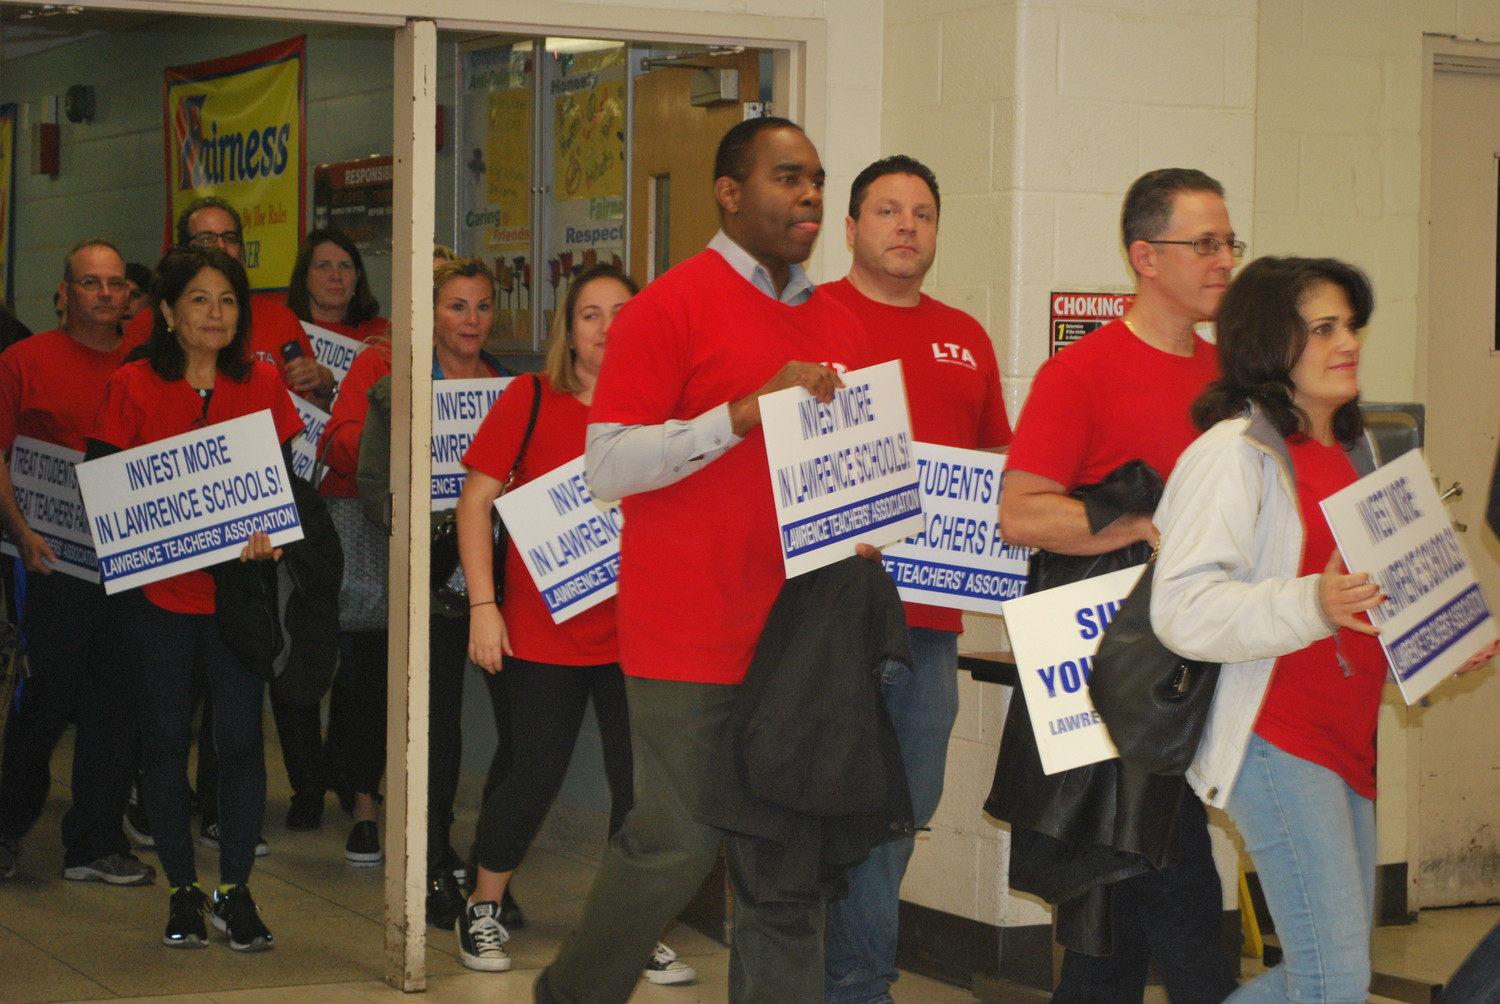 Lawrence School District teachers rallied for a new contract at the Nov. 6 Board of Education meeting.